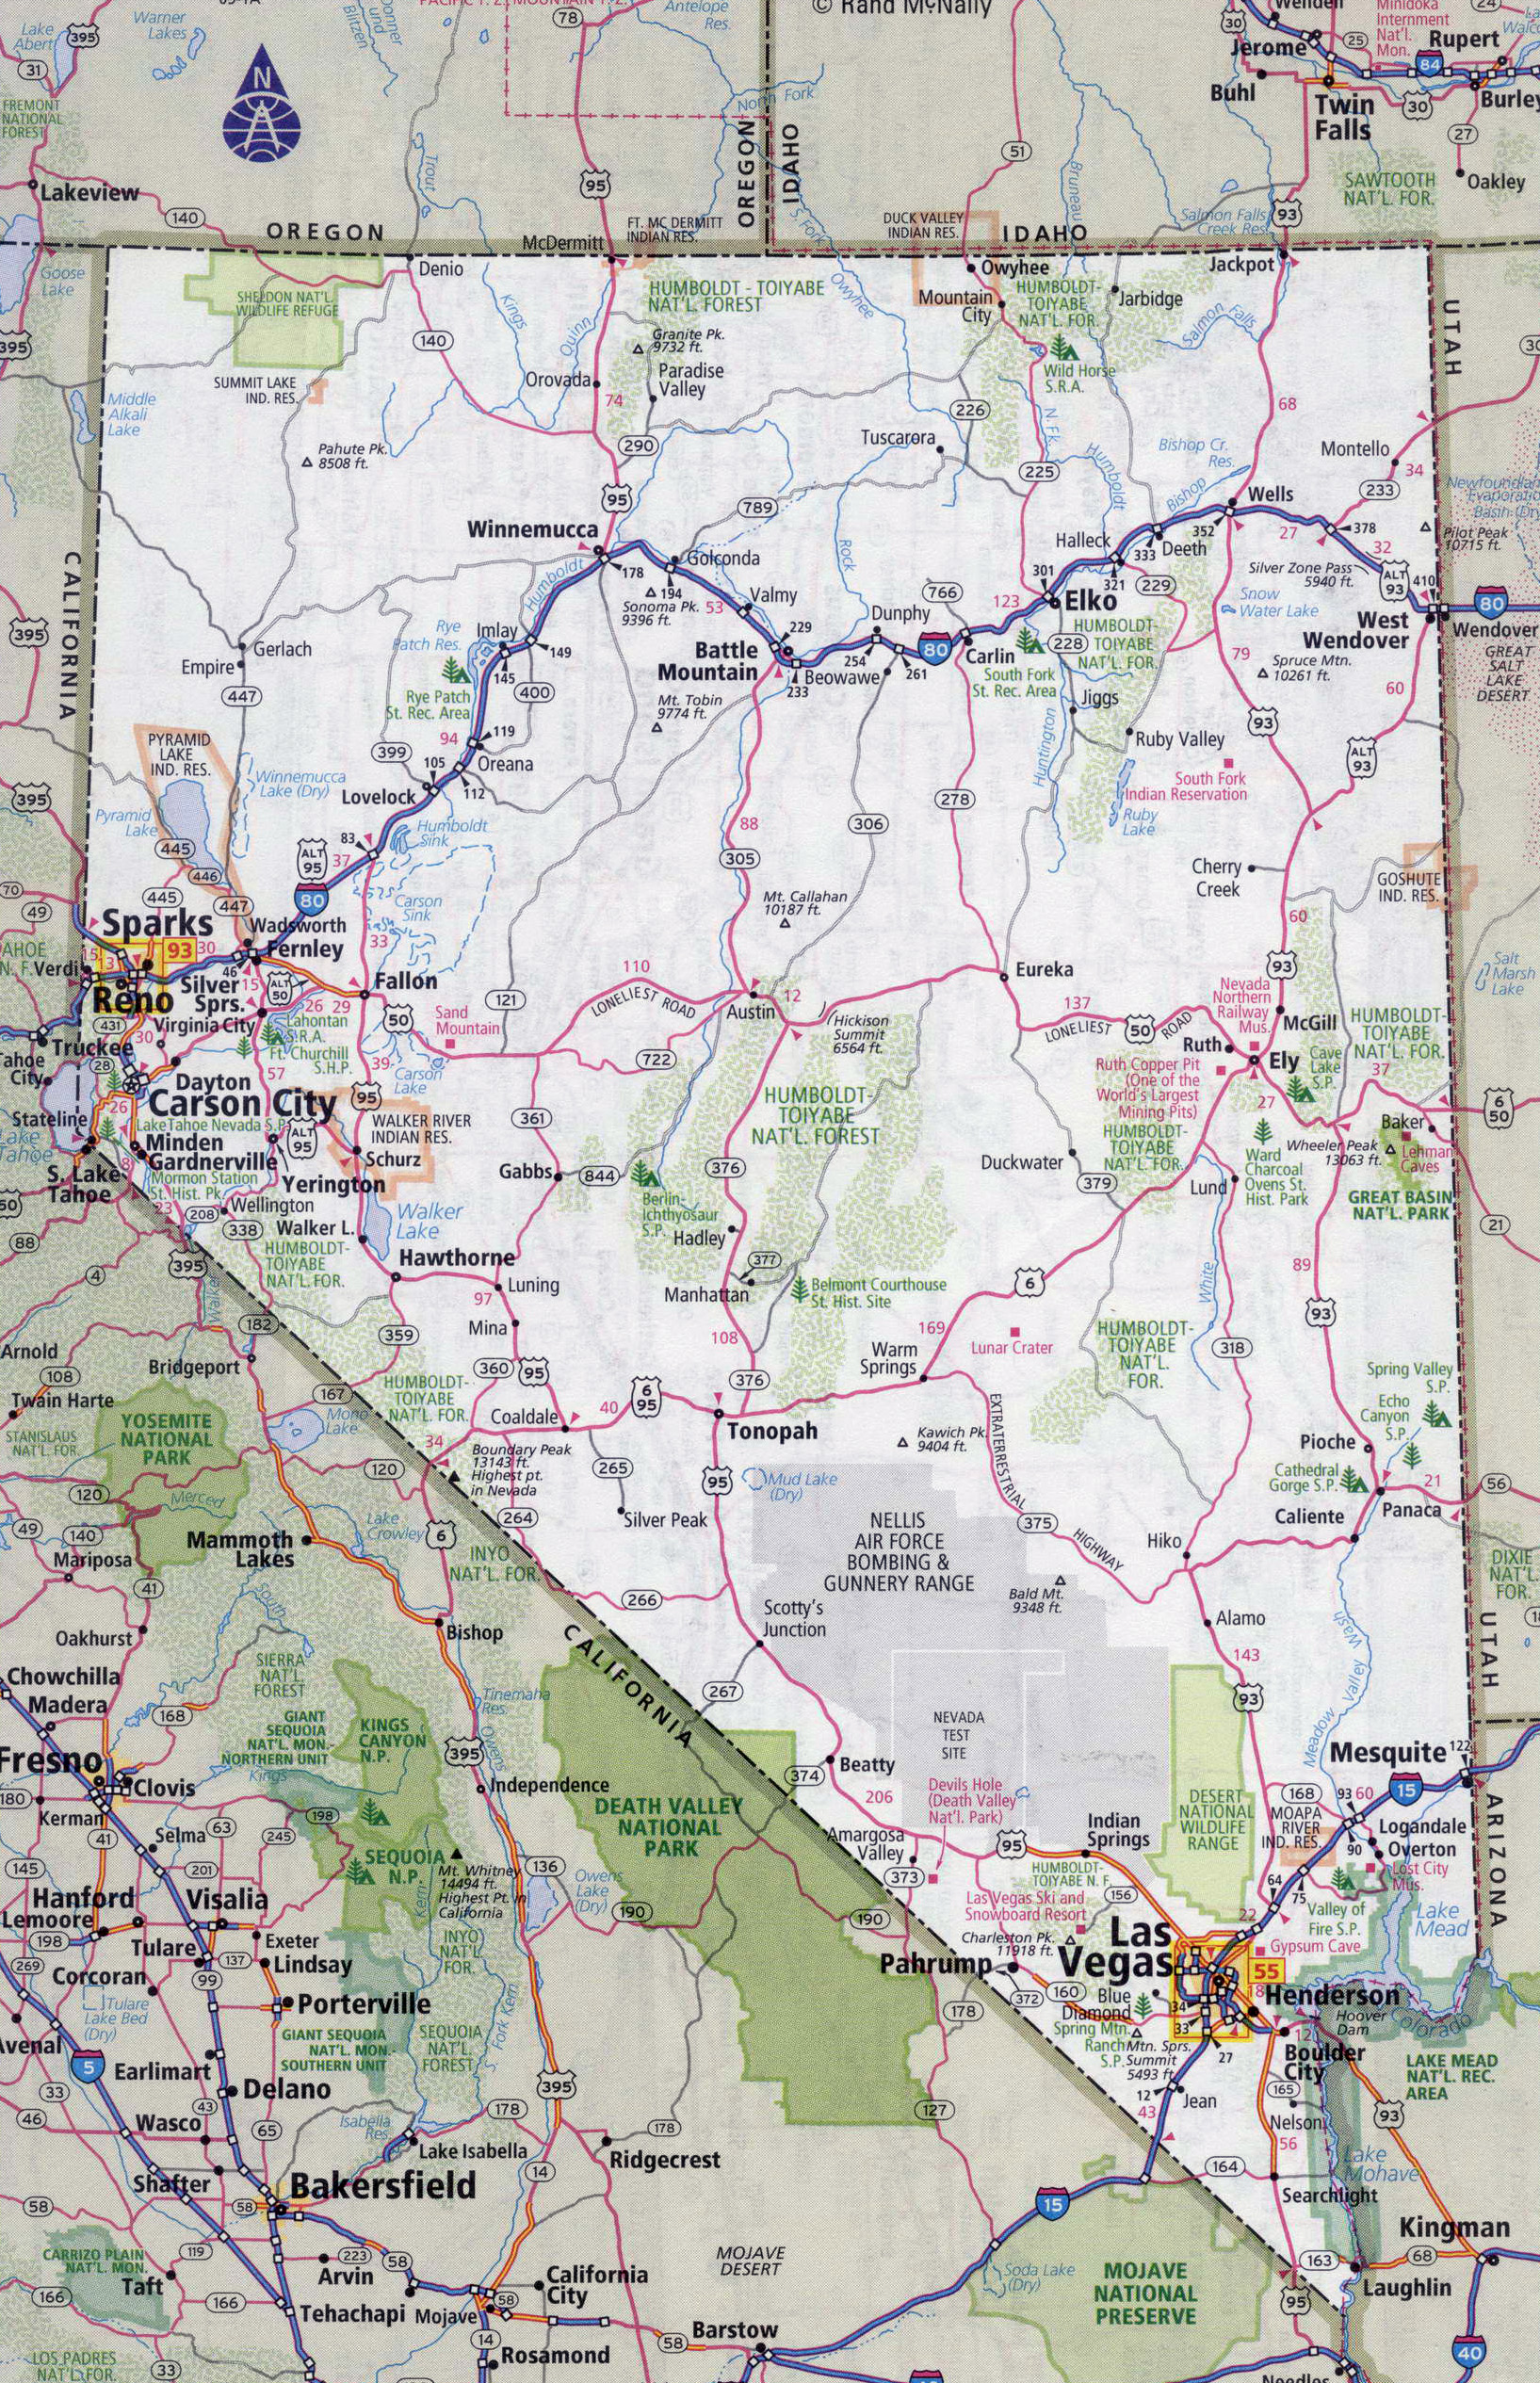 Large Detailed Roads And Highways Map Of Nevada State With Cities - Maps of nevada